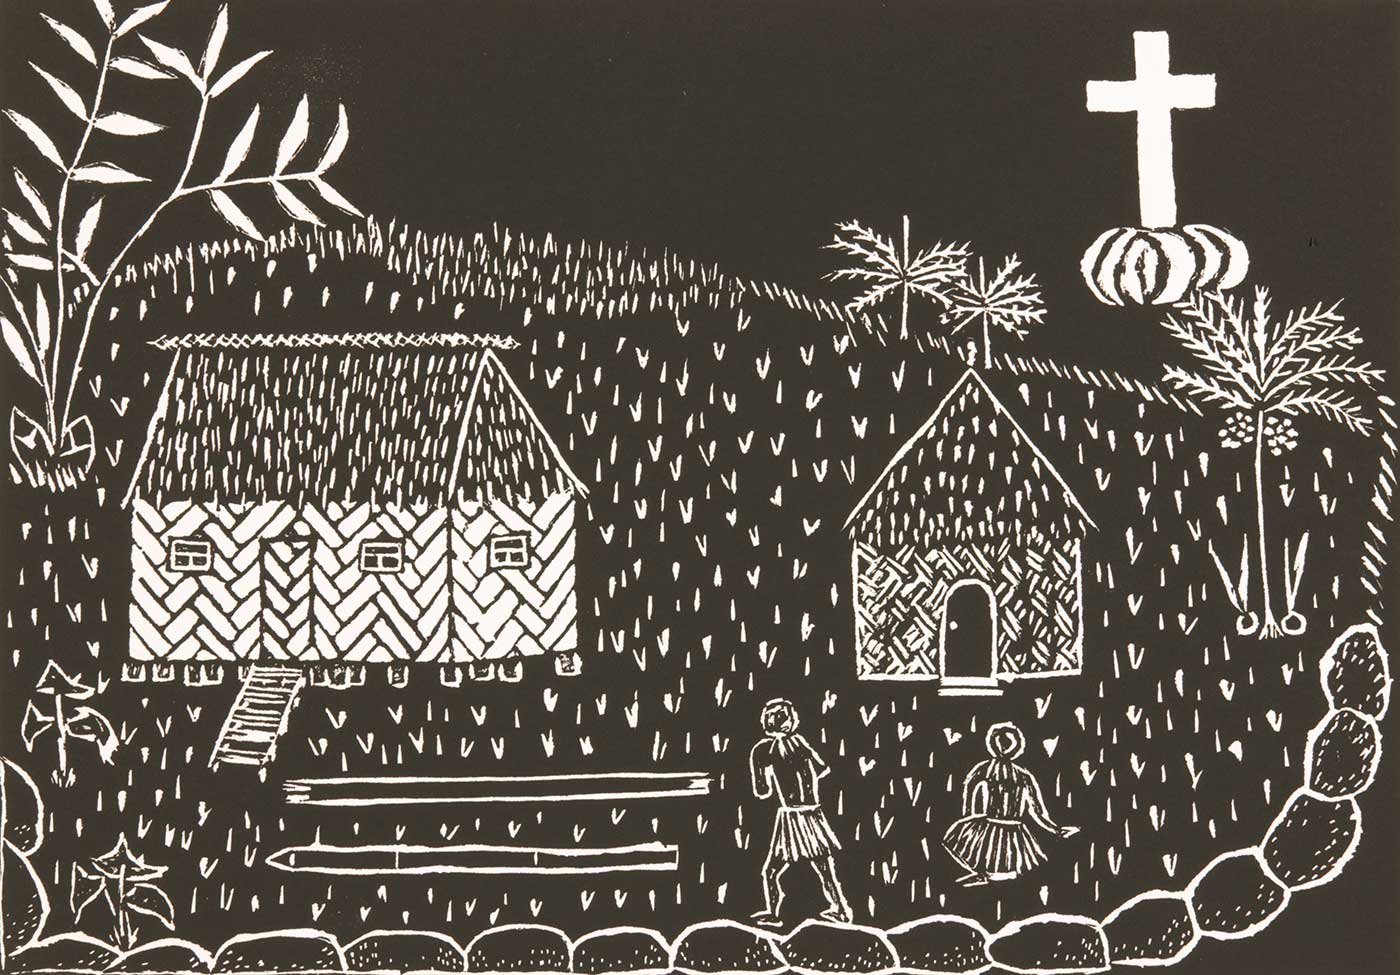 Artwork showing two huts and two figures and a large white cross - click to view larger image